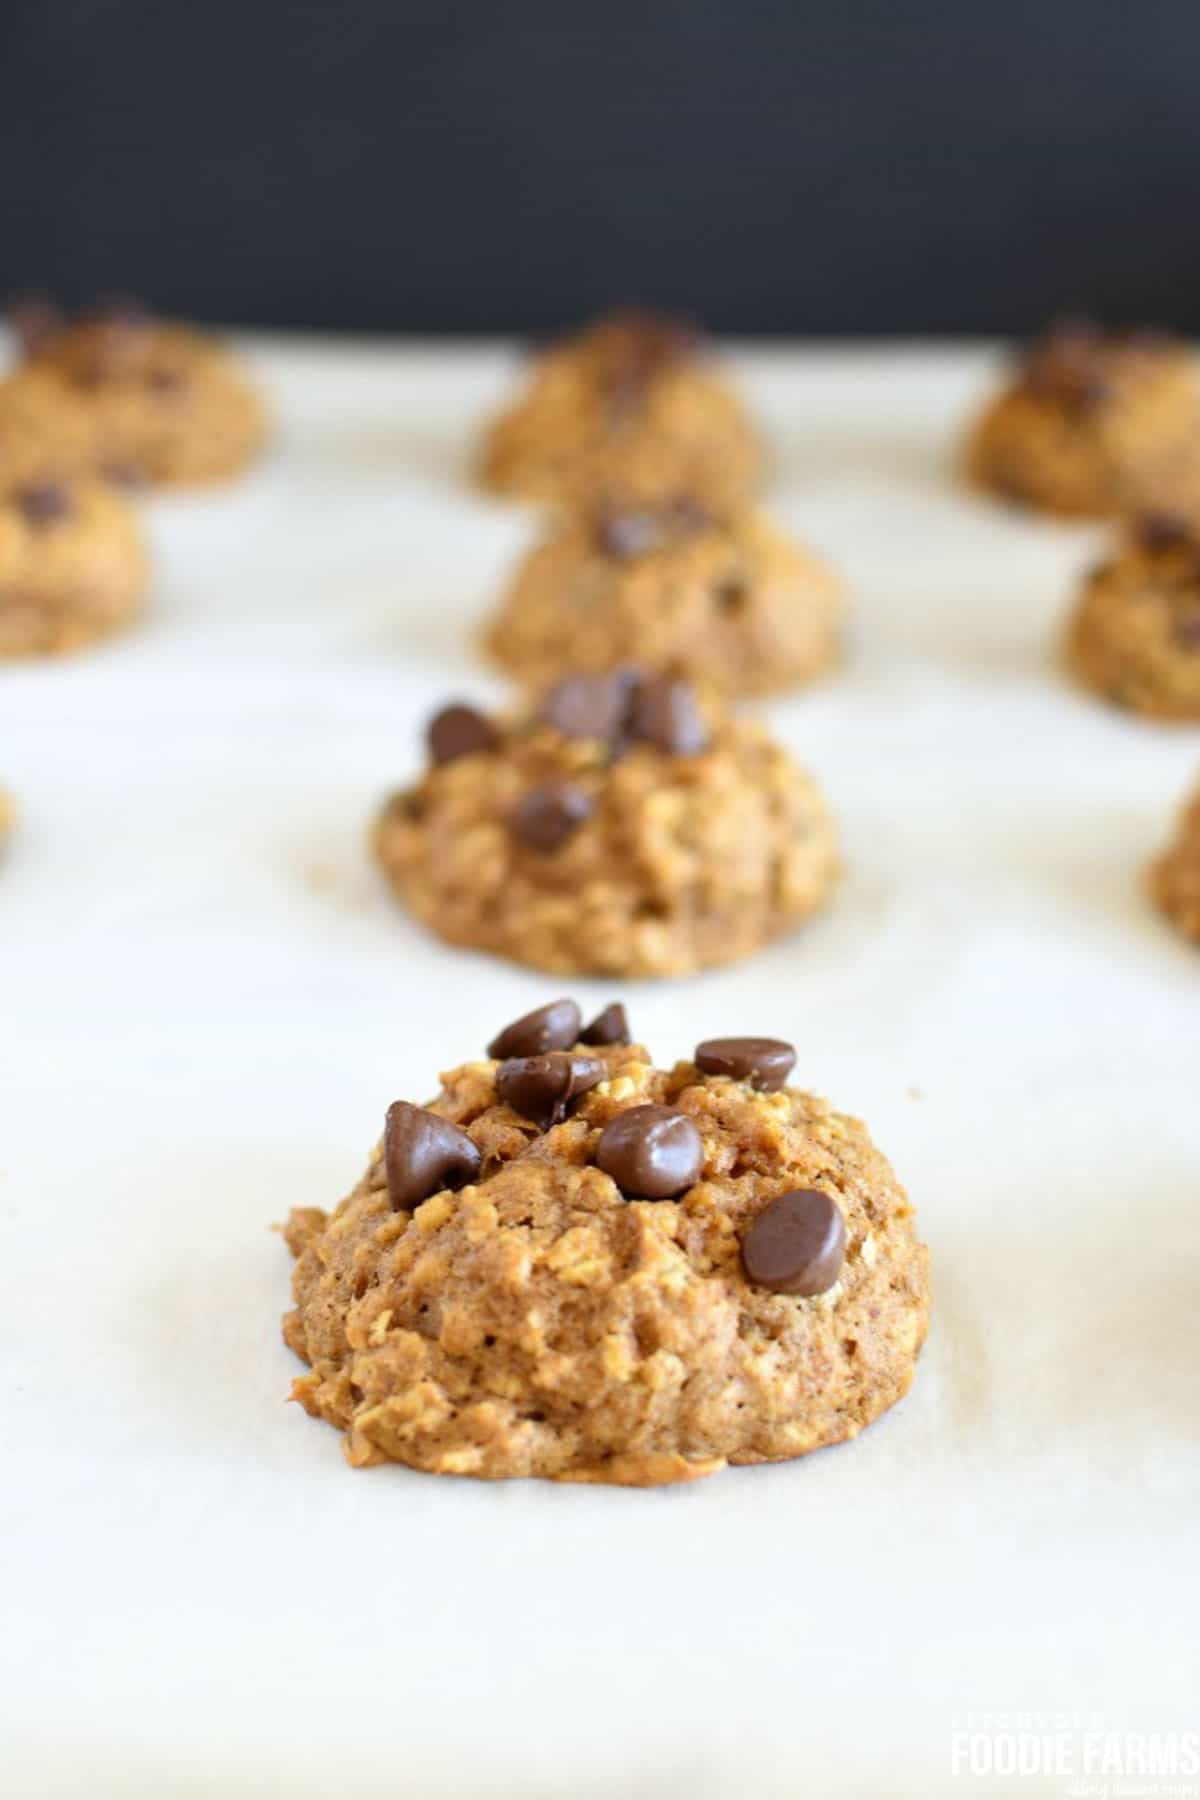 Baked oatmeal chocolate chip pumpkin cookies on a parchment paper lined baking sheet.